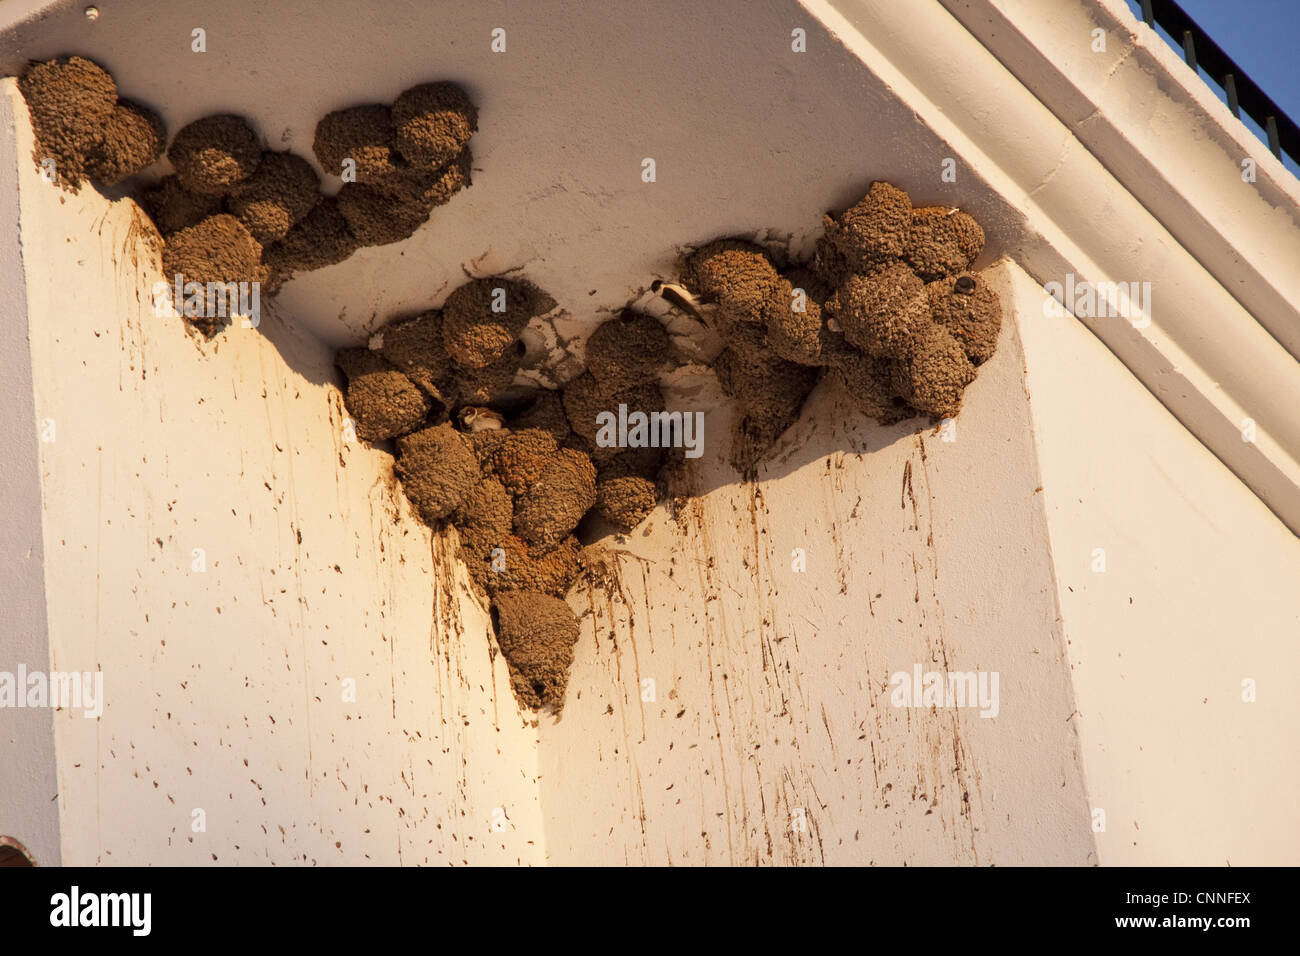 House Martin nests on building, some occupied by House Sparrows - Stock Image